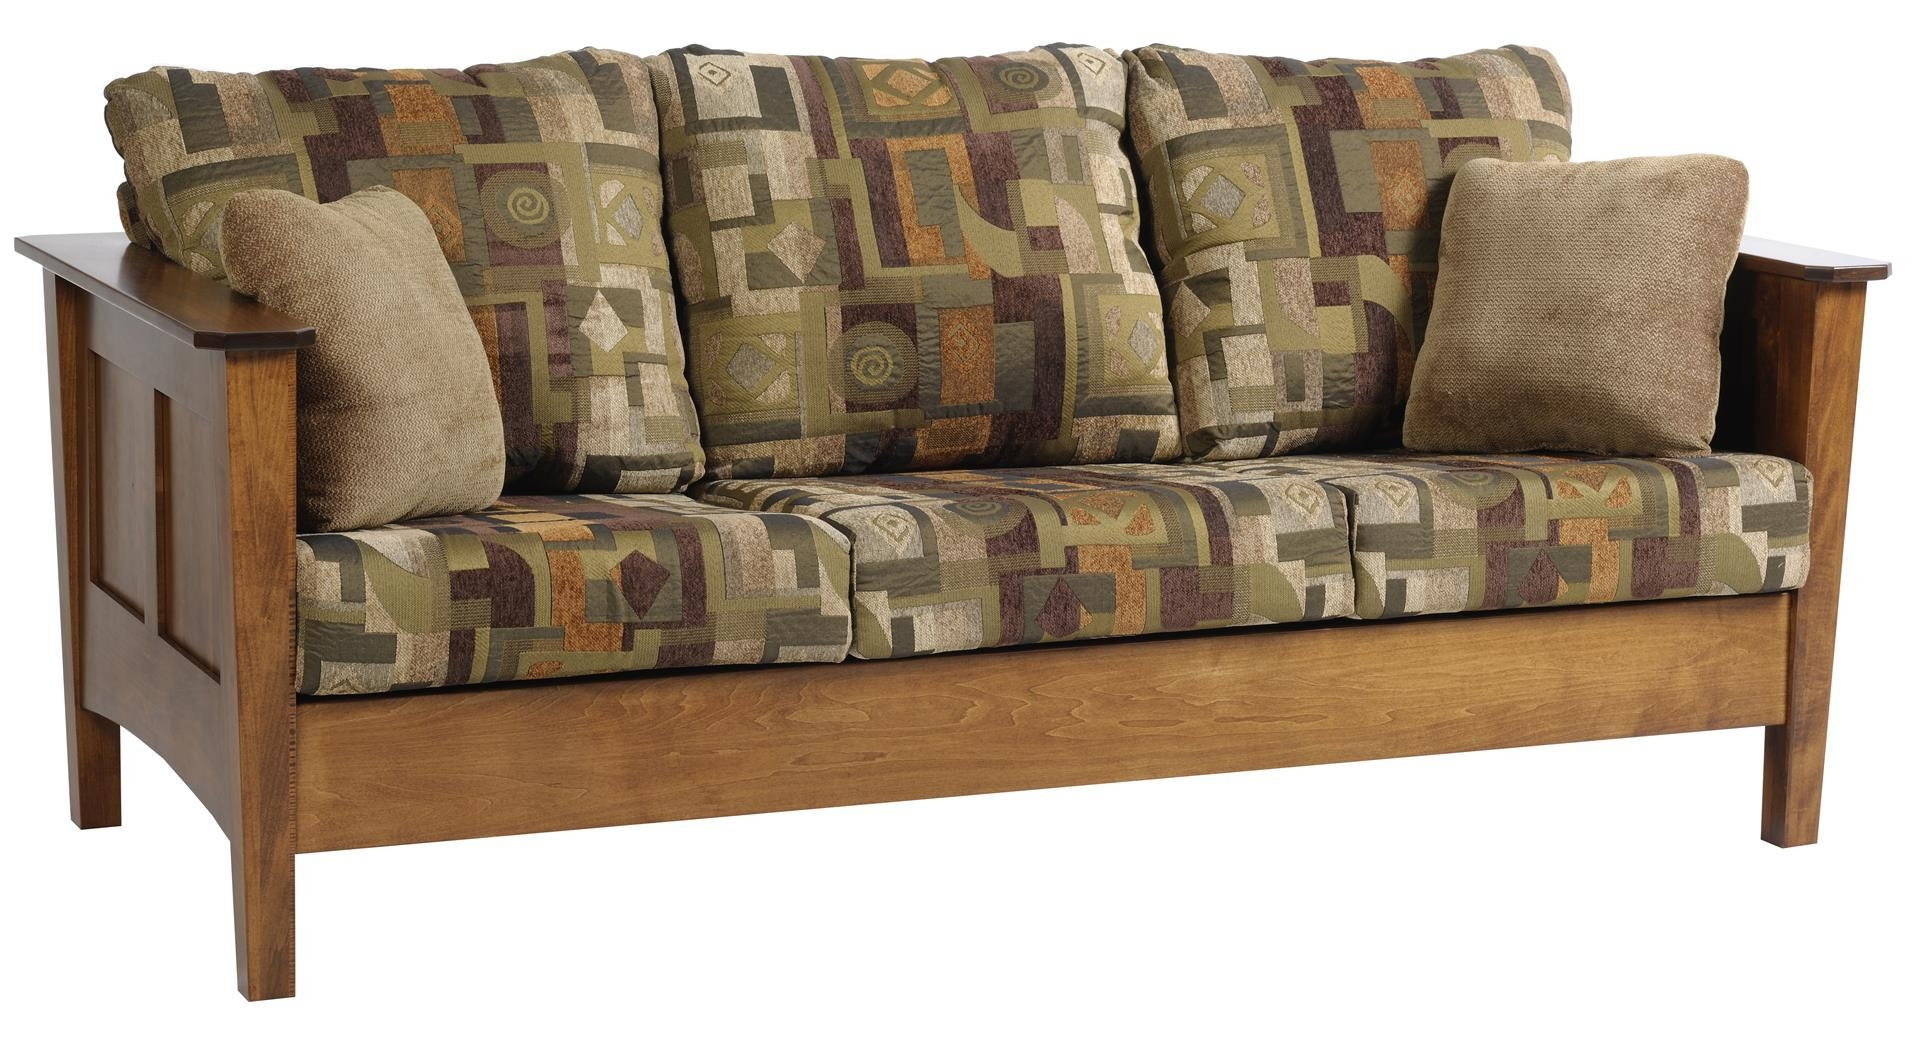 Urban Shaker Sofa in Shaker Sofas